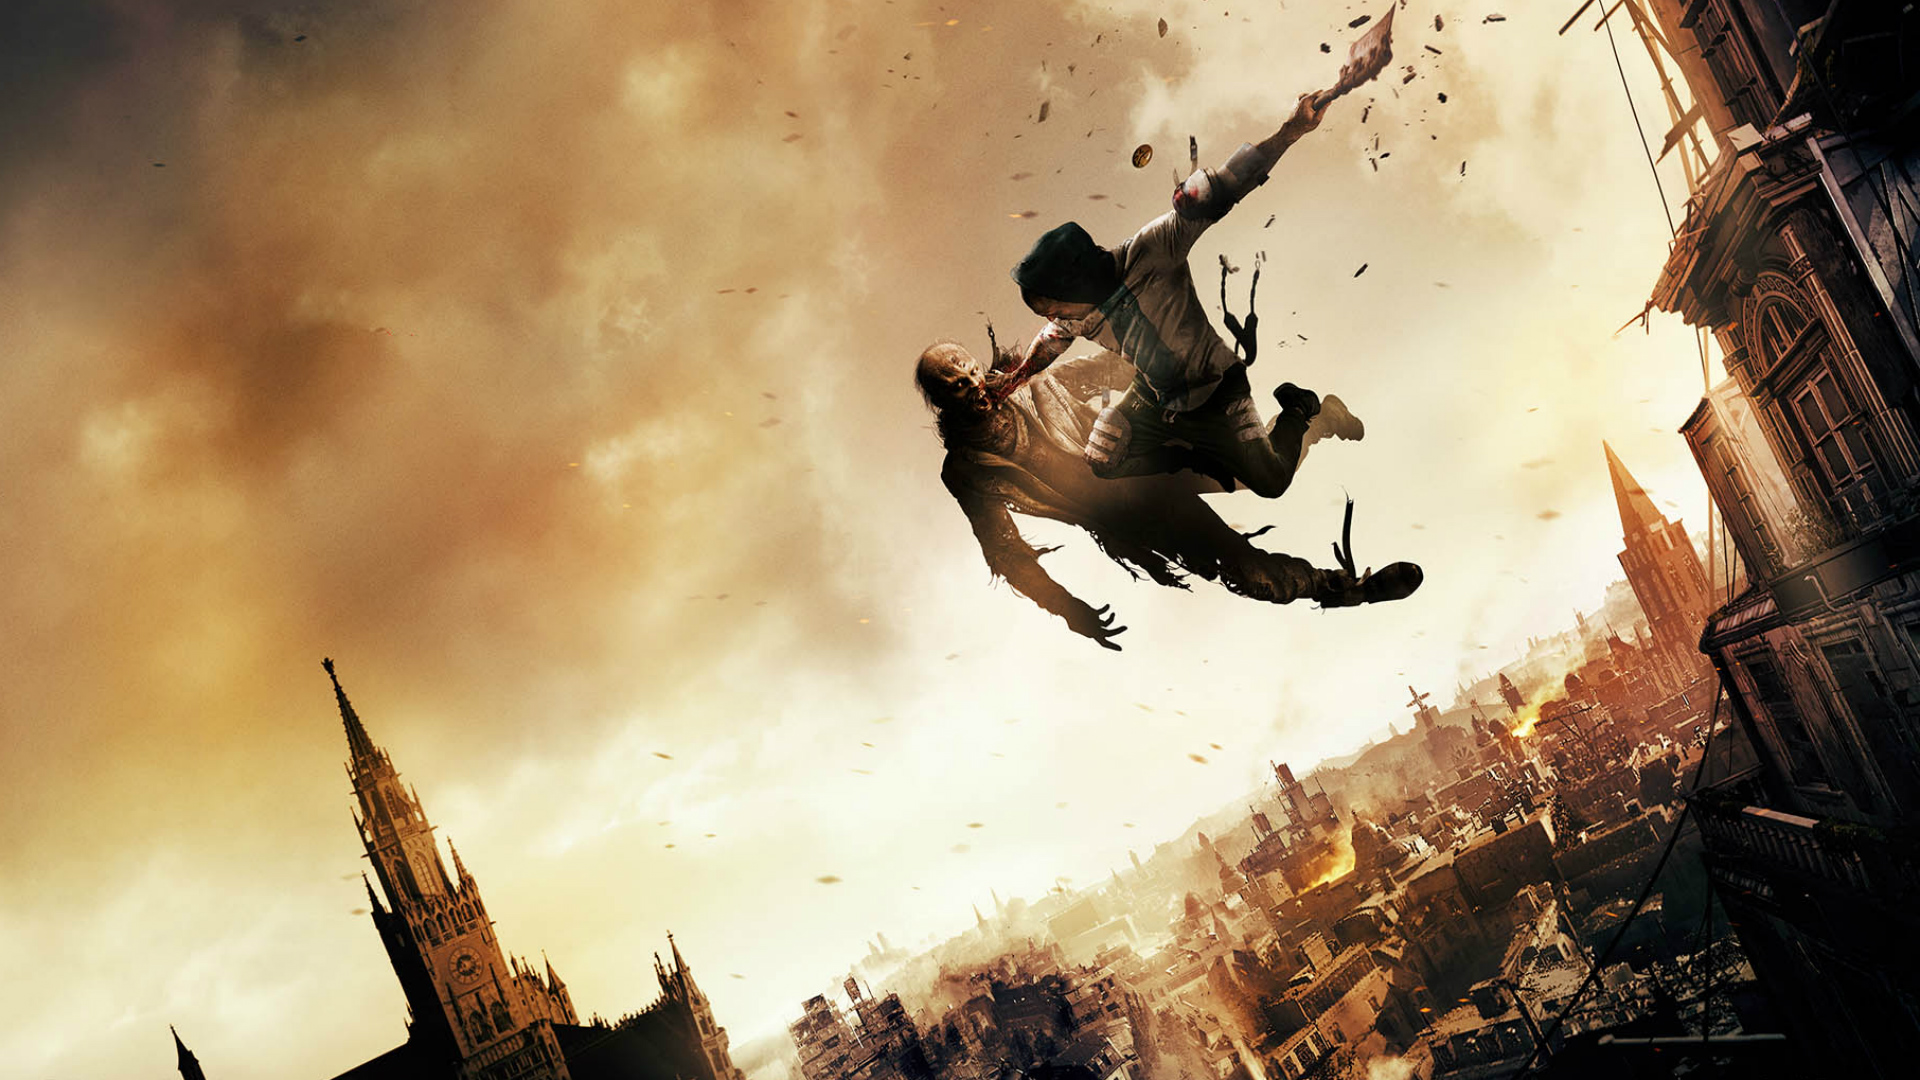 Dying Light 2 Everything We Know About Its Release Date Gameplay